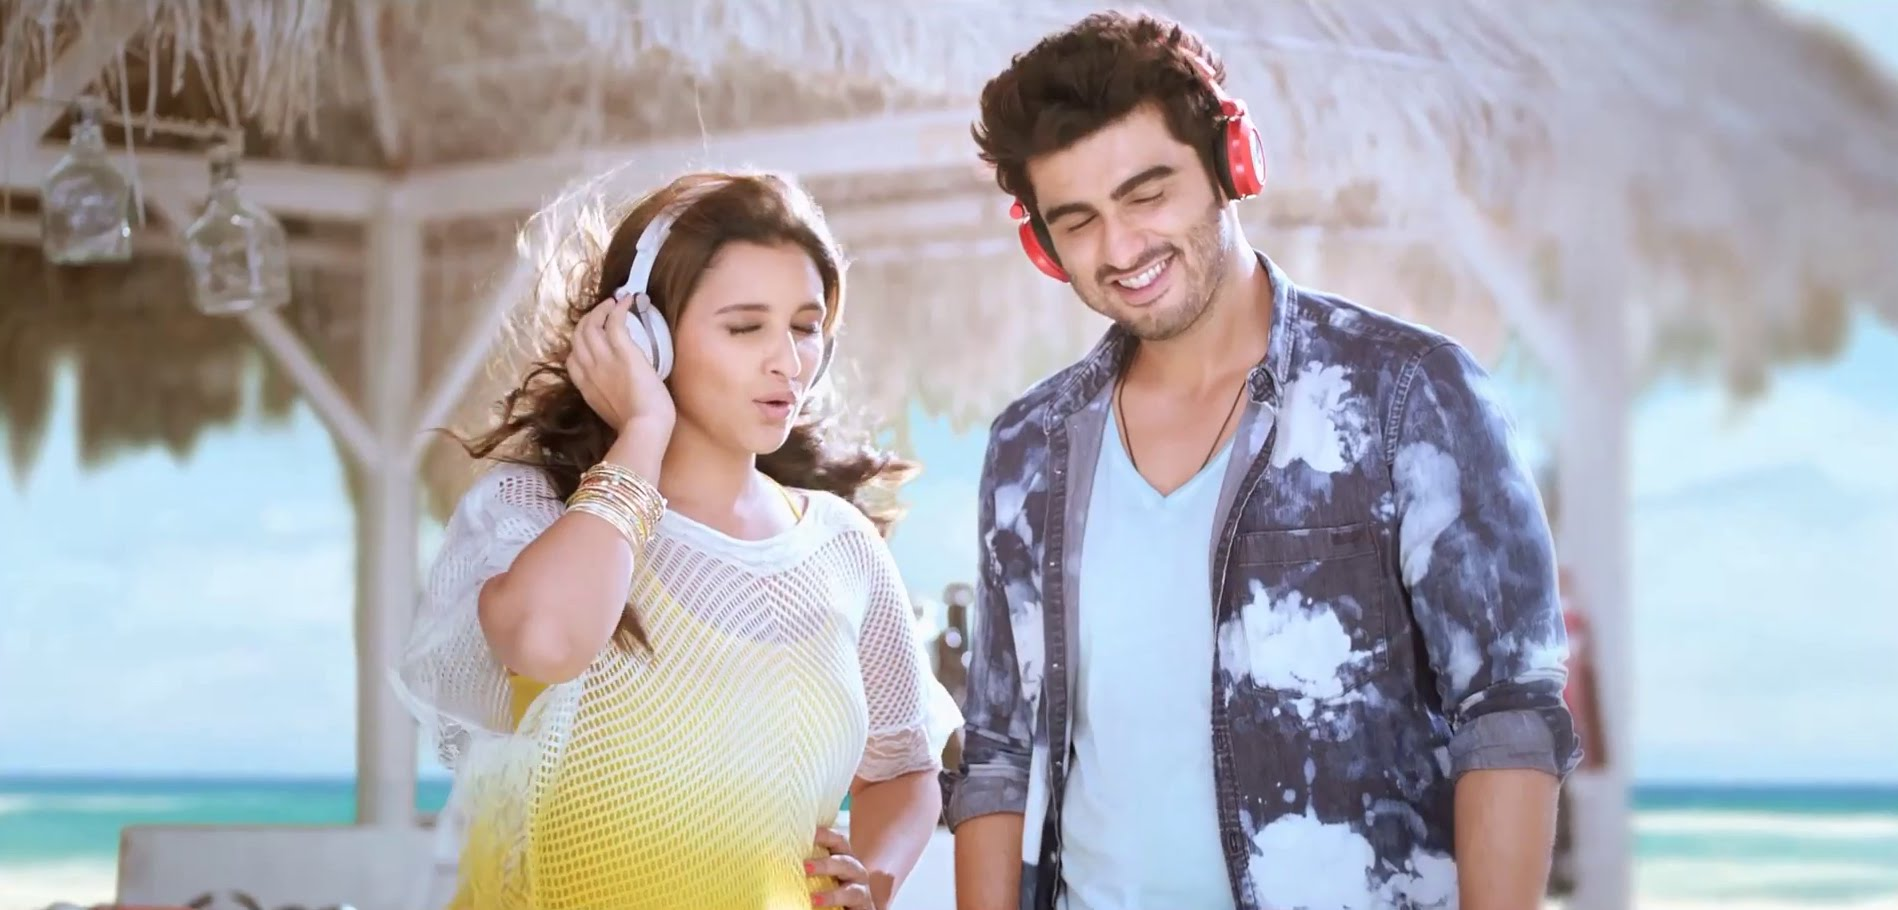 Arjun Kapoor and Parineeti Chopra are back together after 5 years in Dibakar Banerjee's next